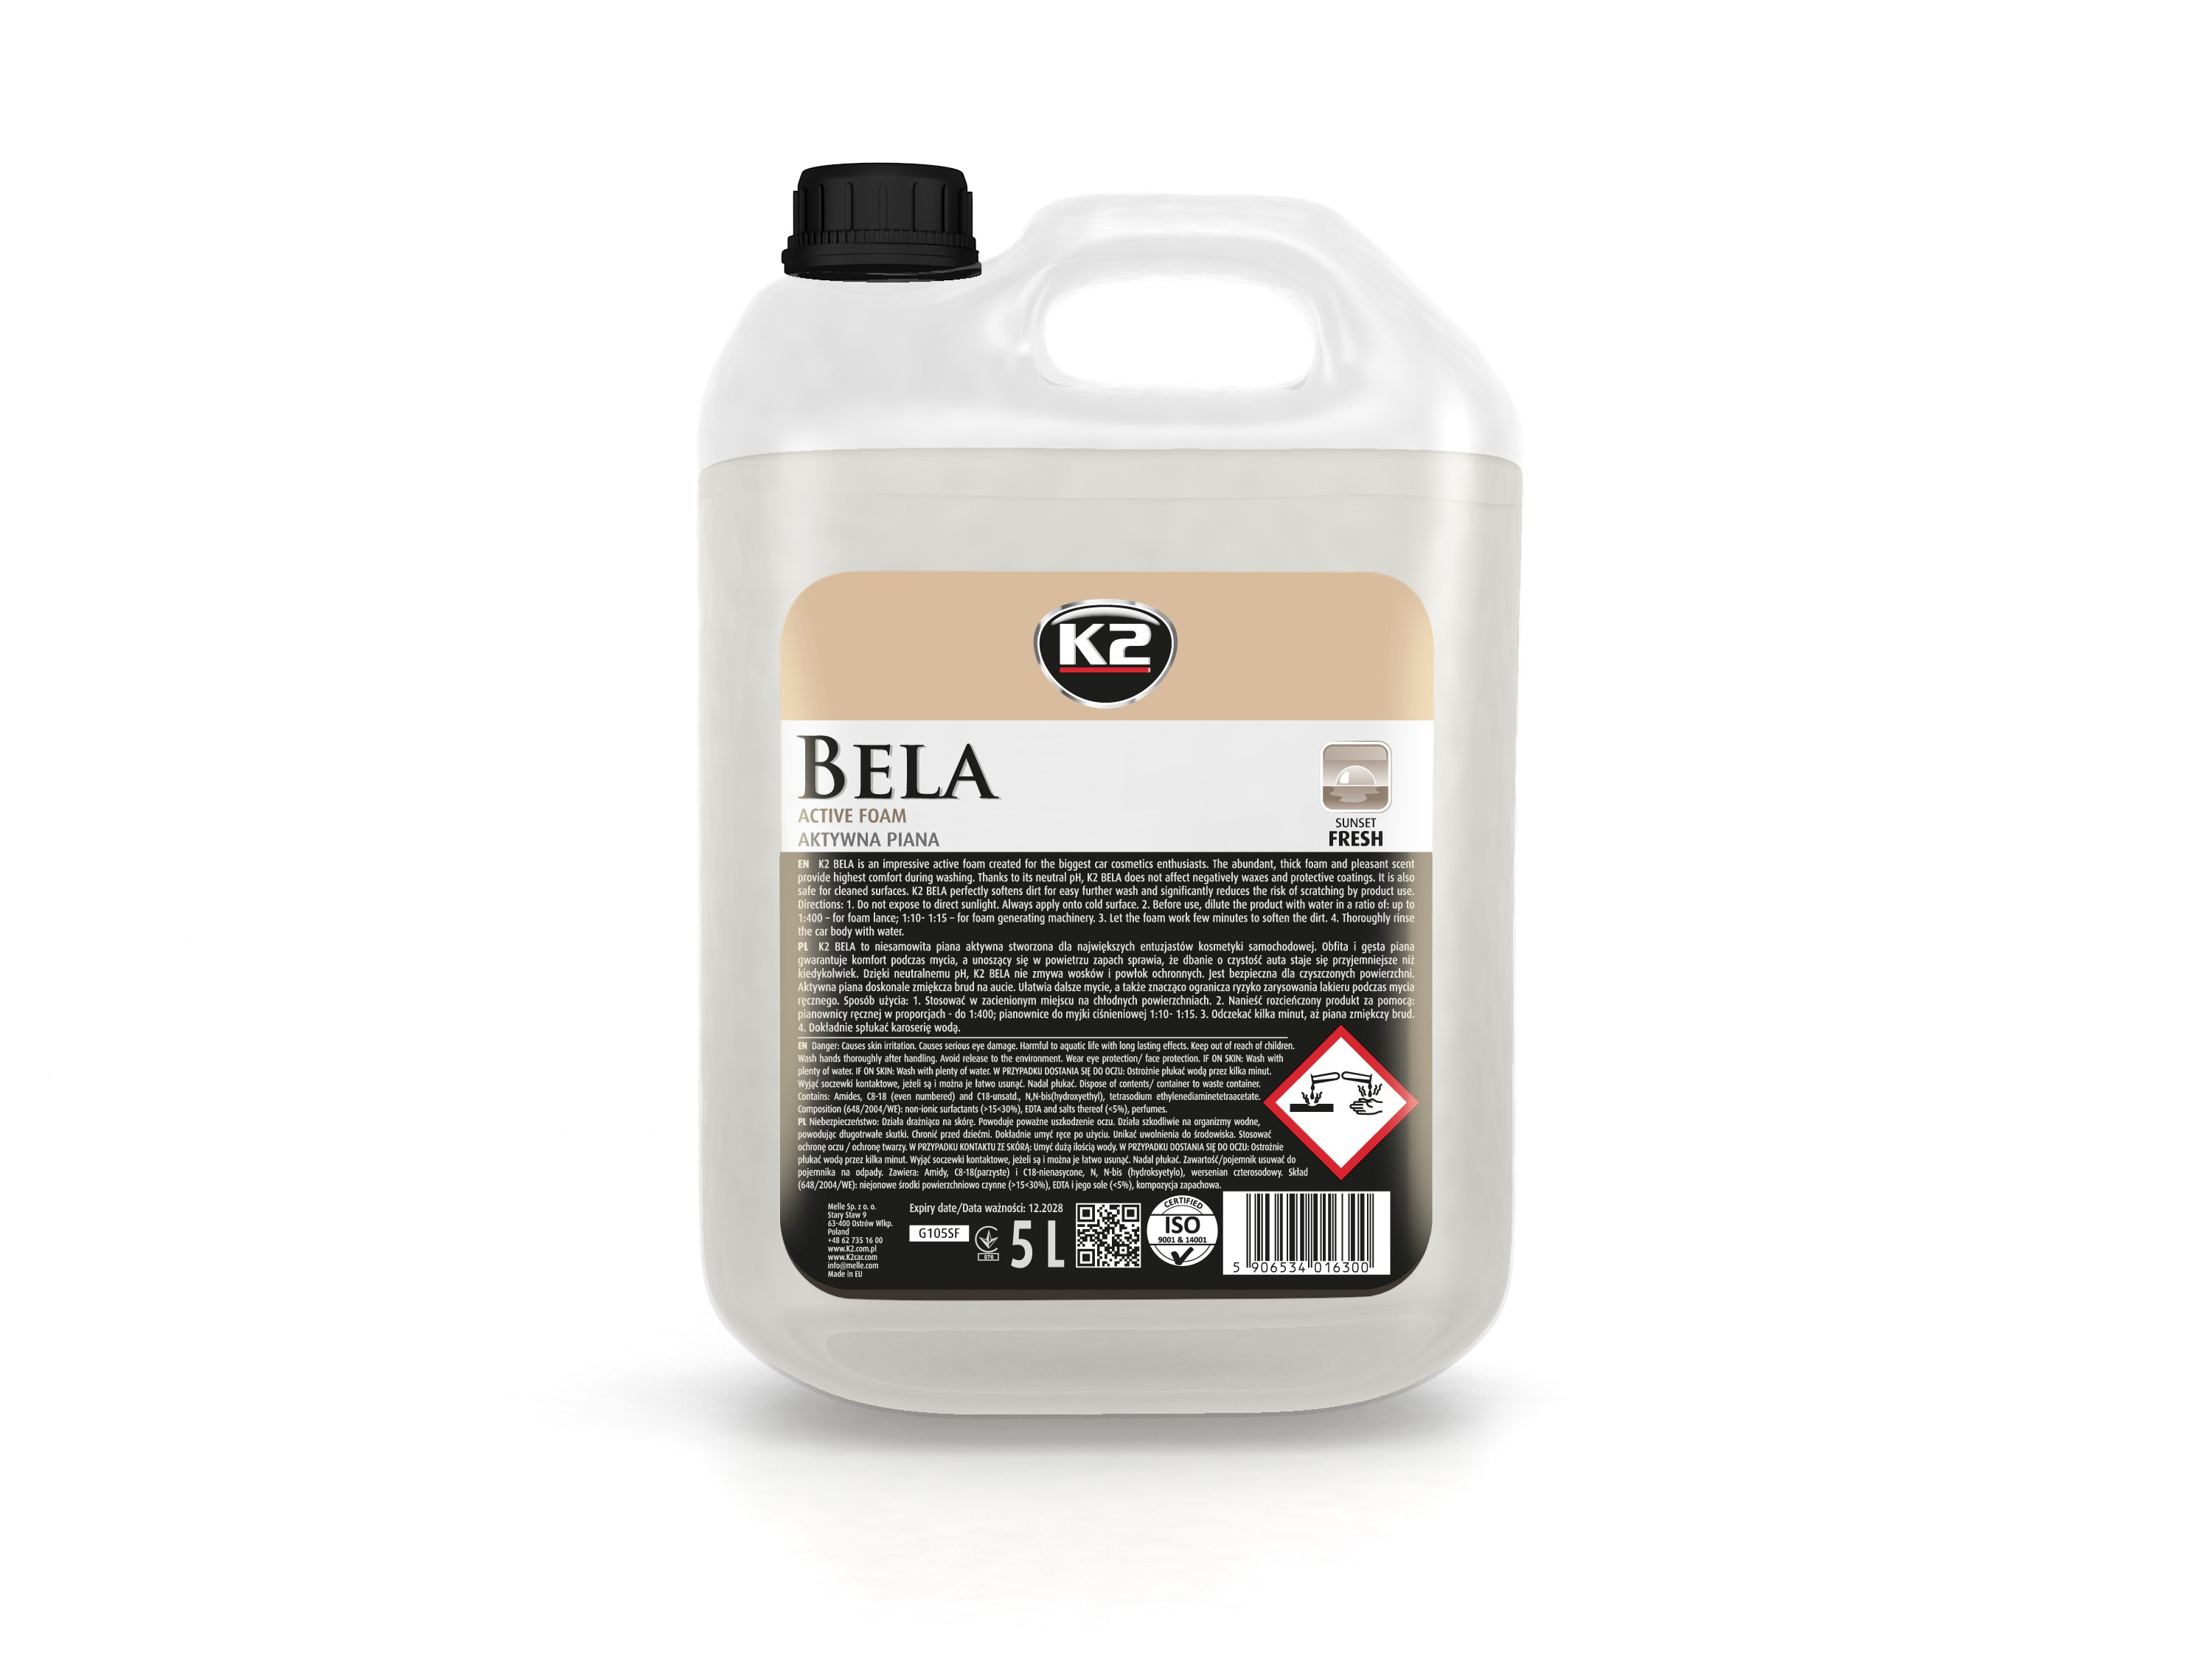 K2 BELA 5L SUNSET FRESH